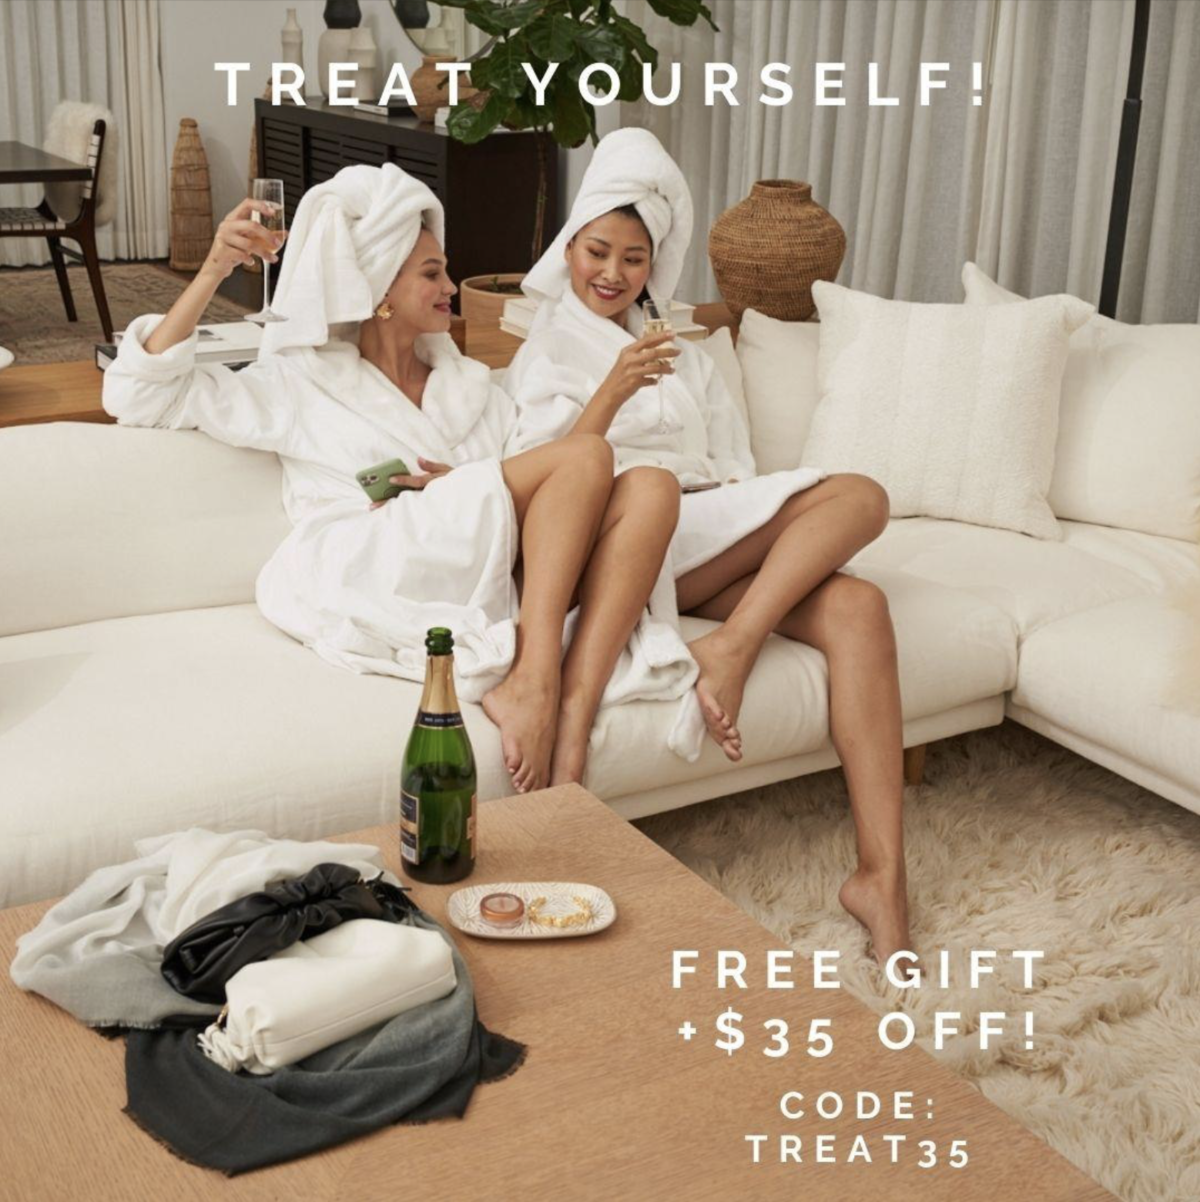 CURATEUR Coupon Code – Save $35 + Get a FREE Gift!